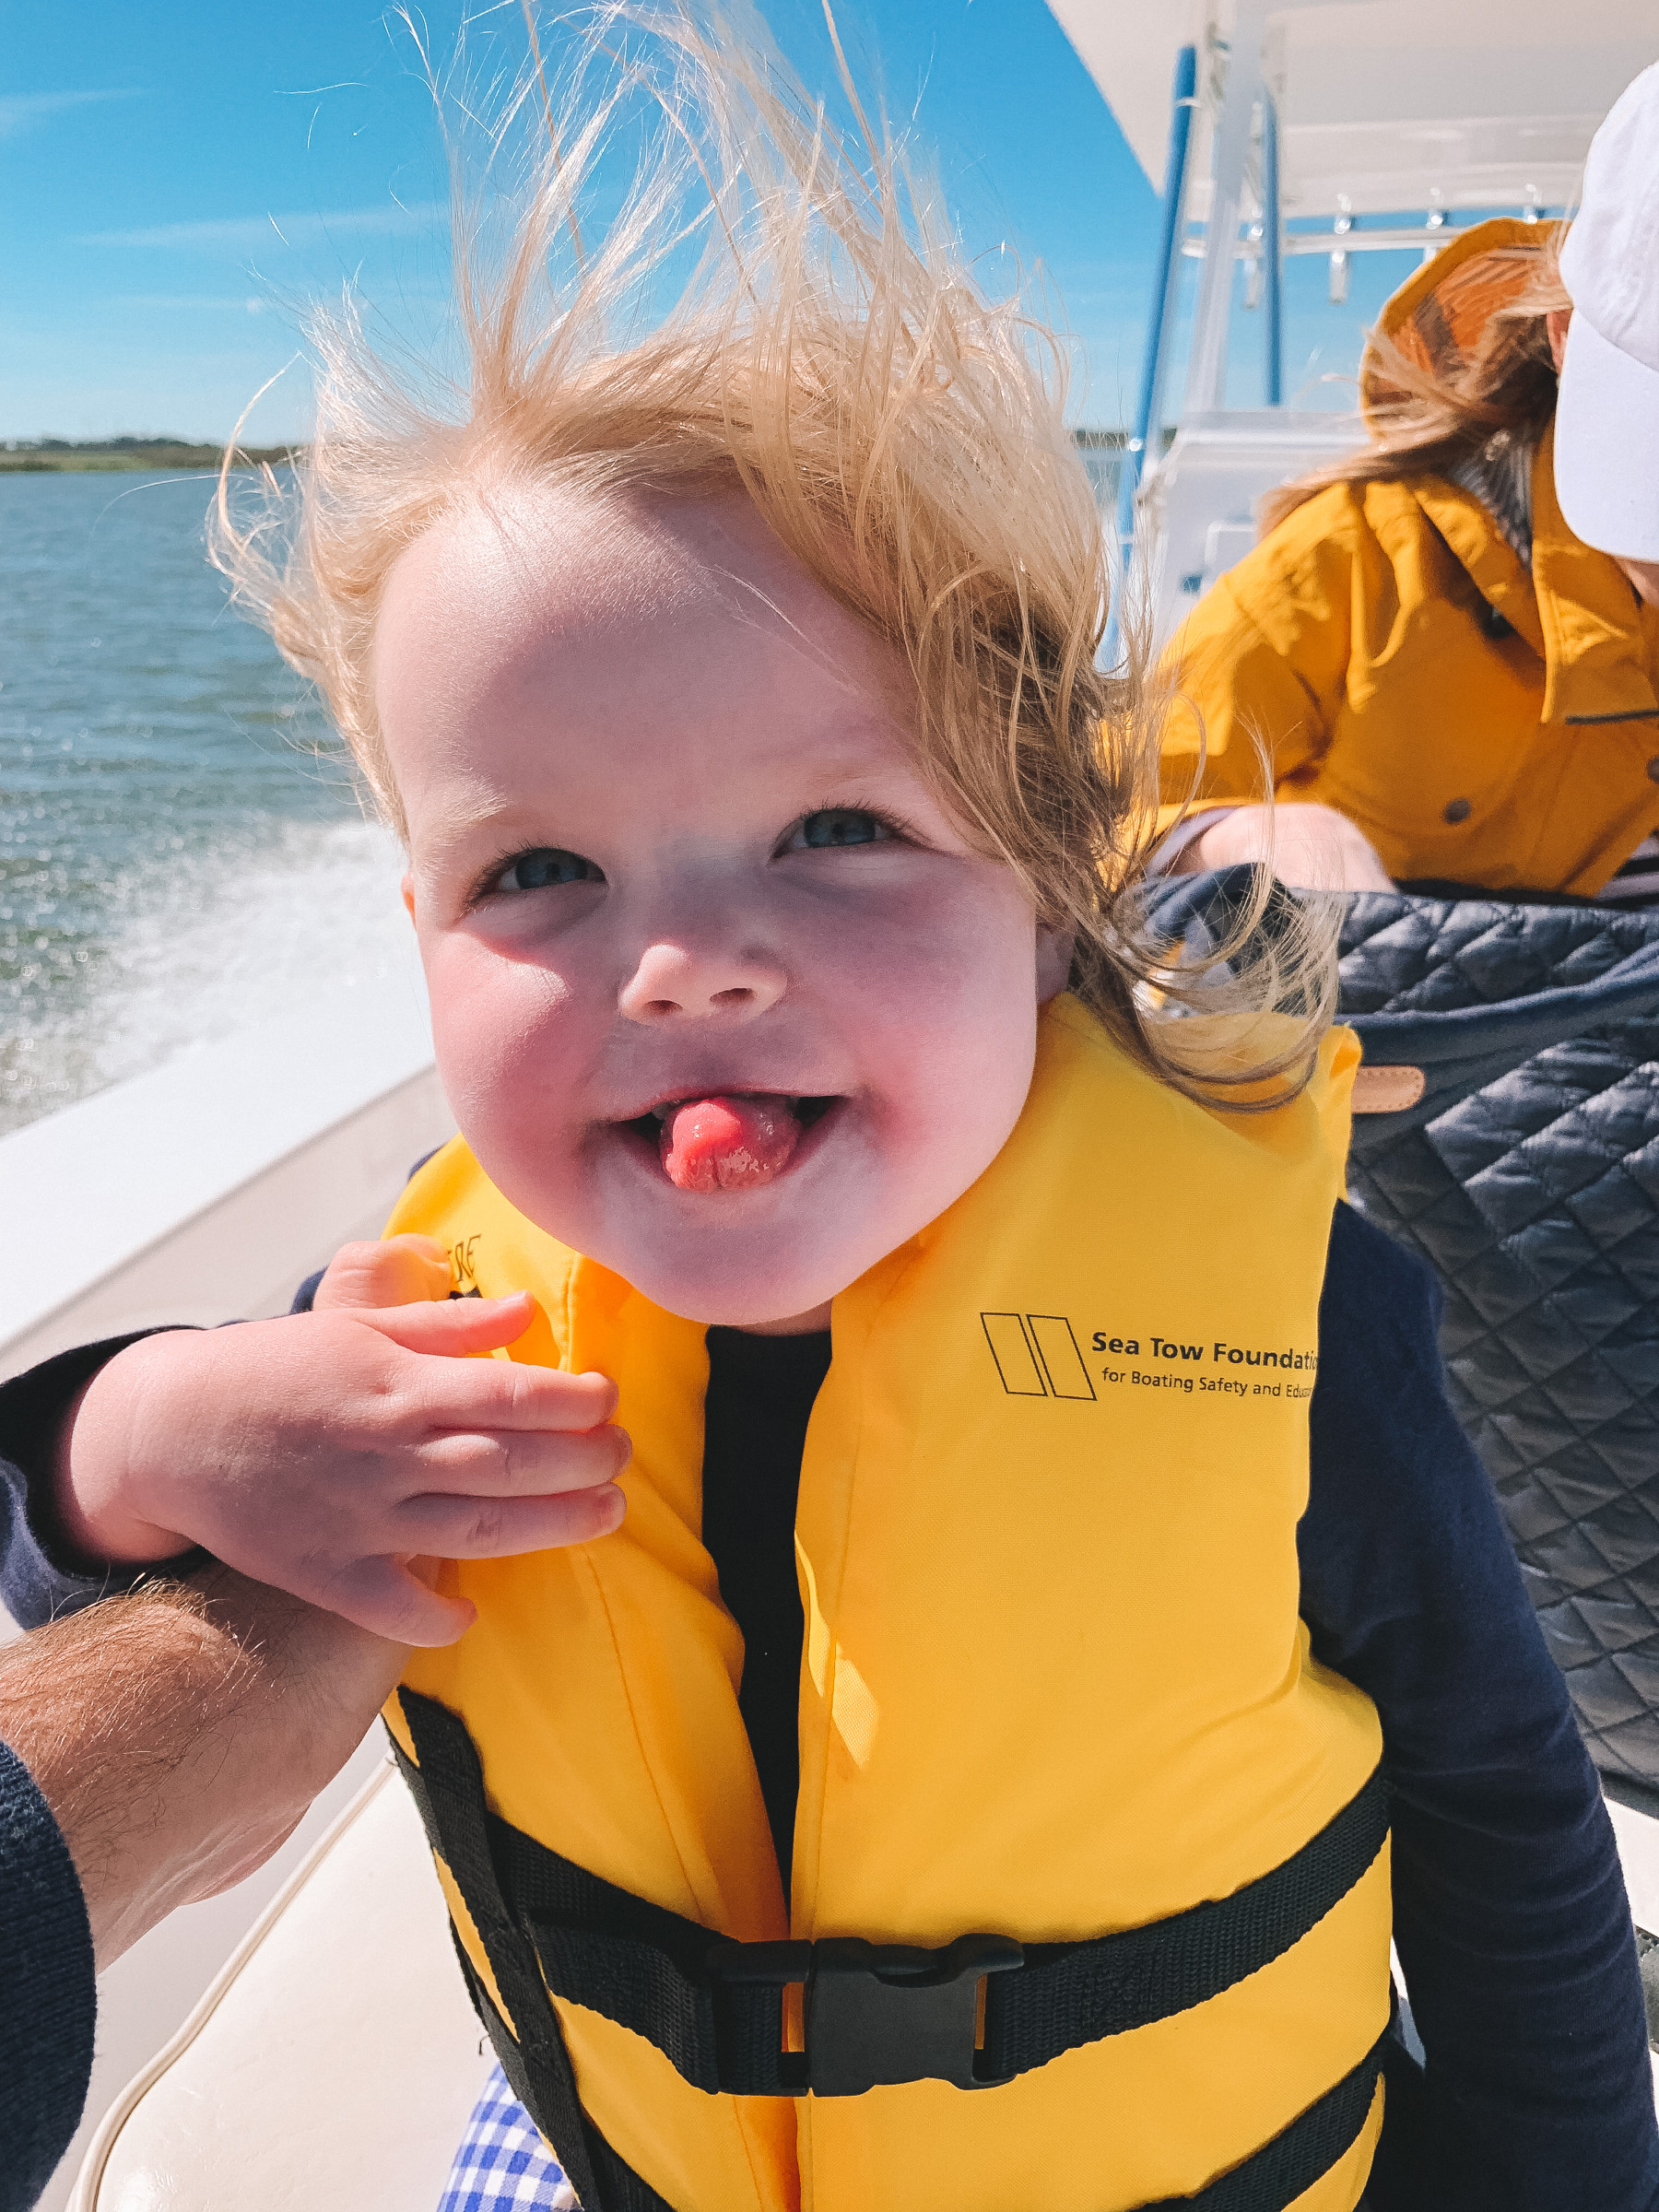 Emma Larkin is enjoying a Dolphin Boat Tour on Sea Island